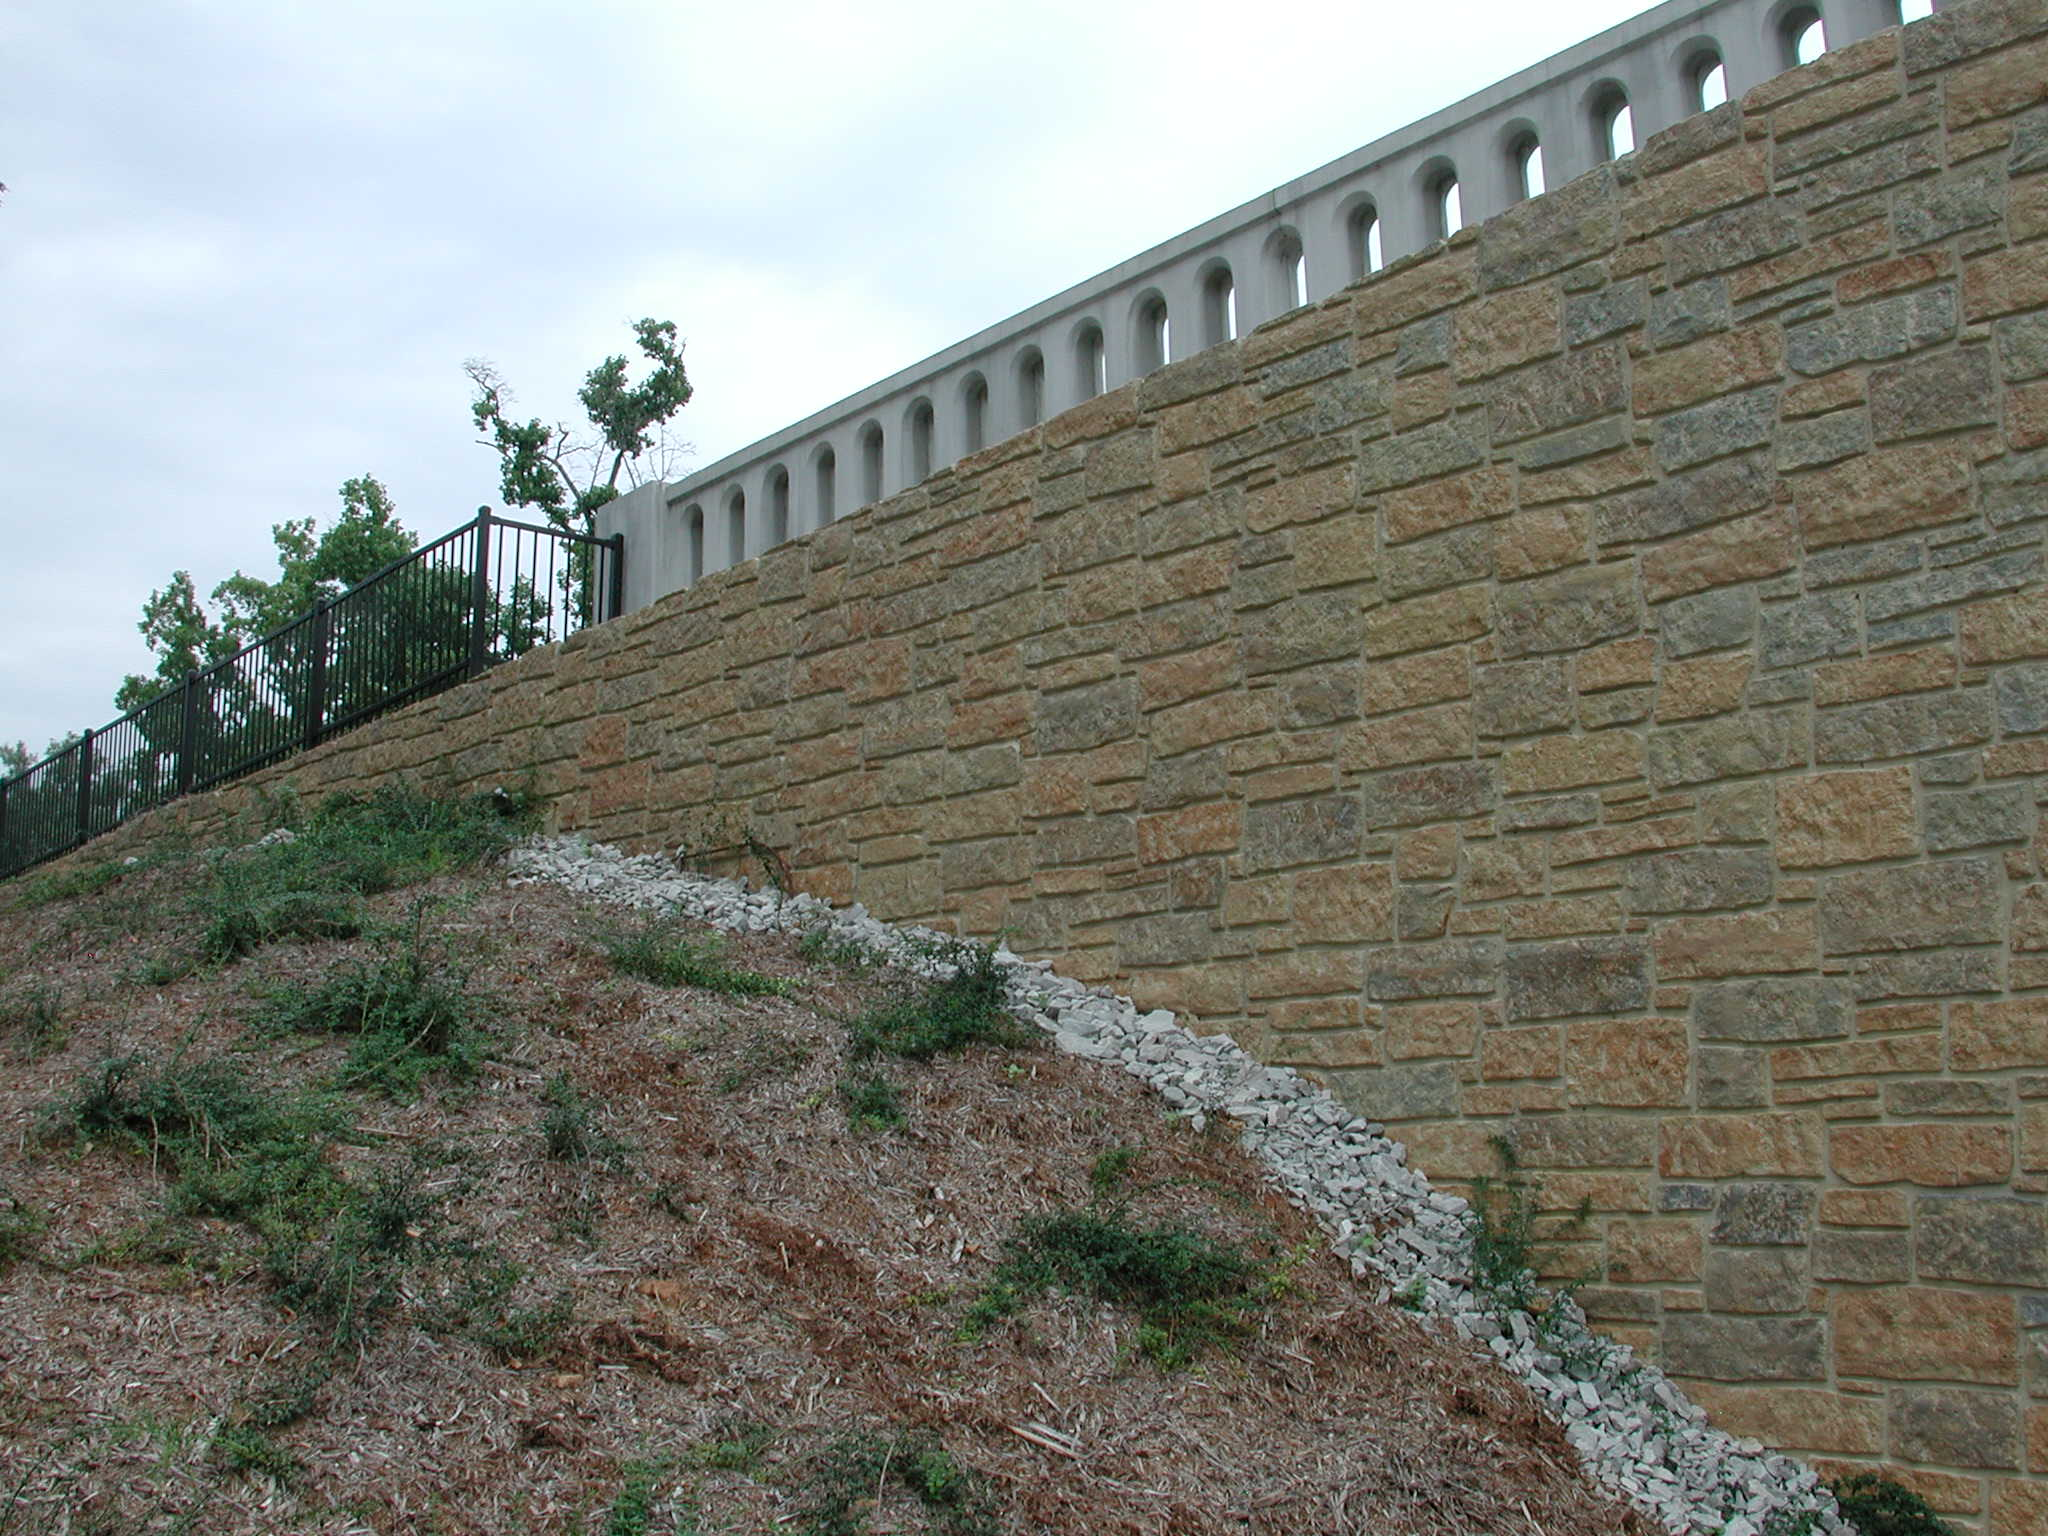 12005-bearpath-coursed-stone-formliner-hq-37